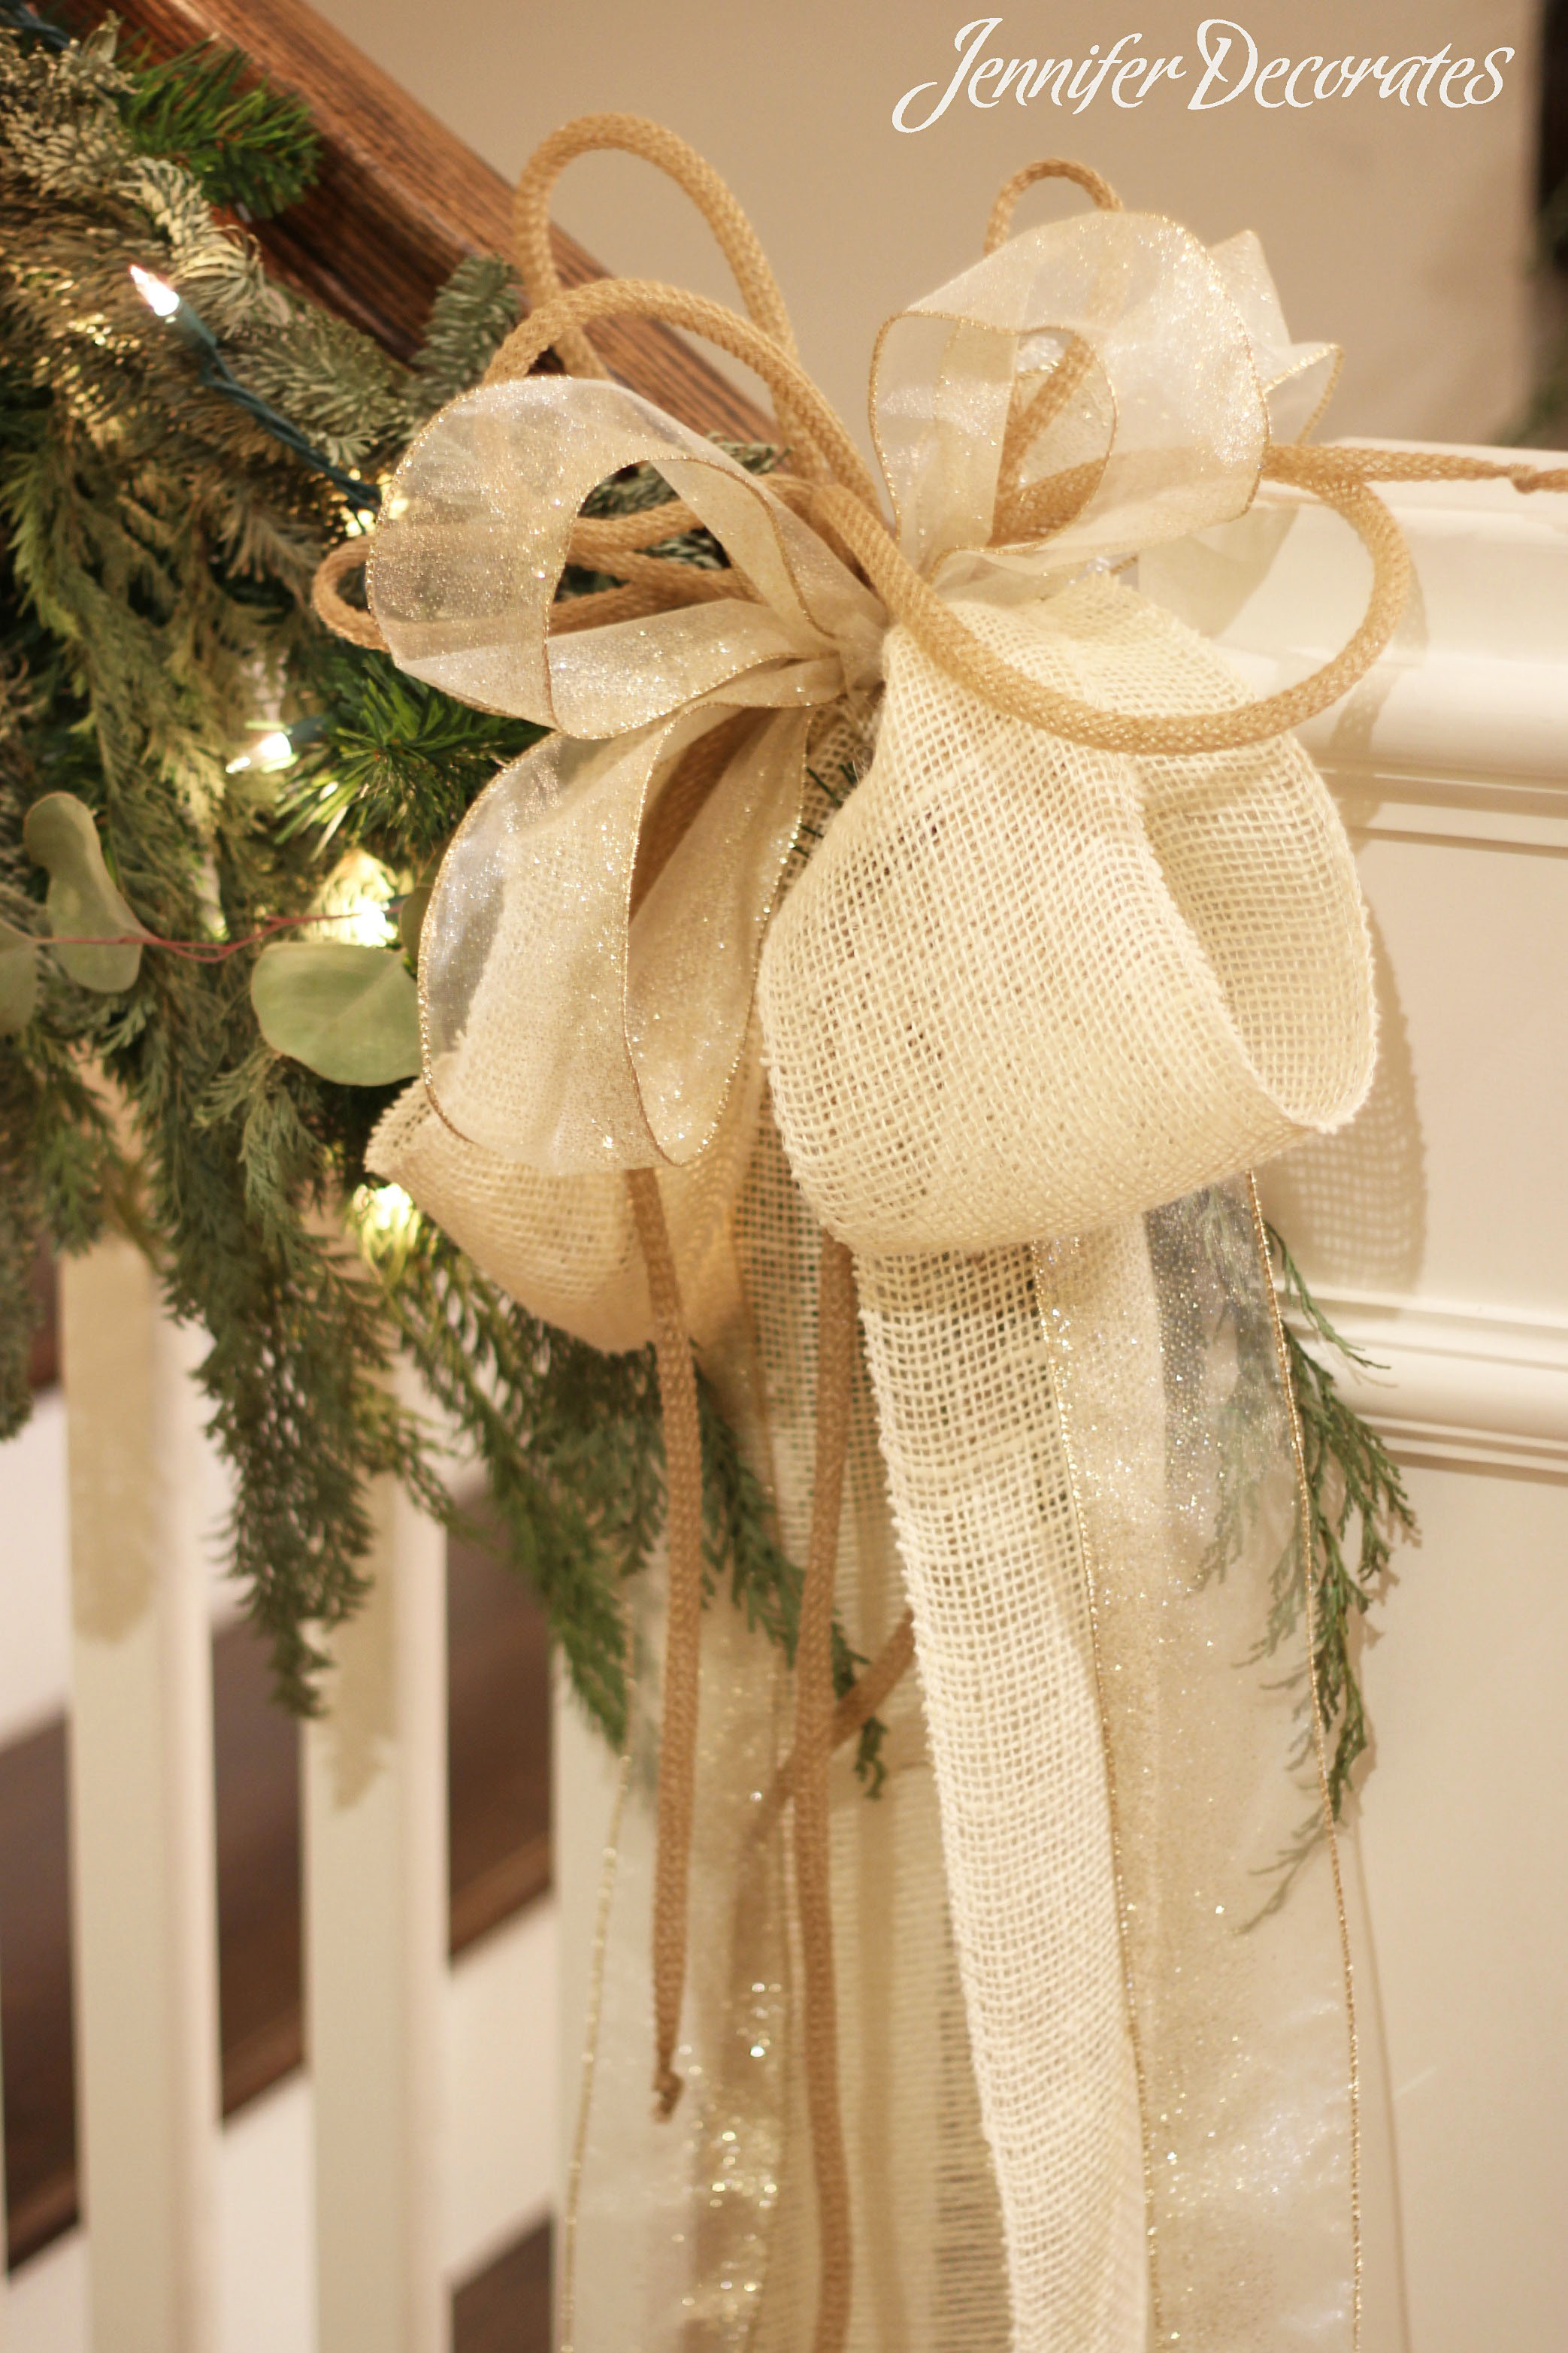 White Christmas Decorating Ideas From Jennifer Decorates. What A Beautiful  Bow! I Took This Photo In A Christmas Parade Of Homes.